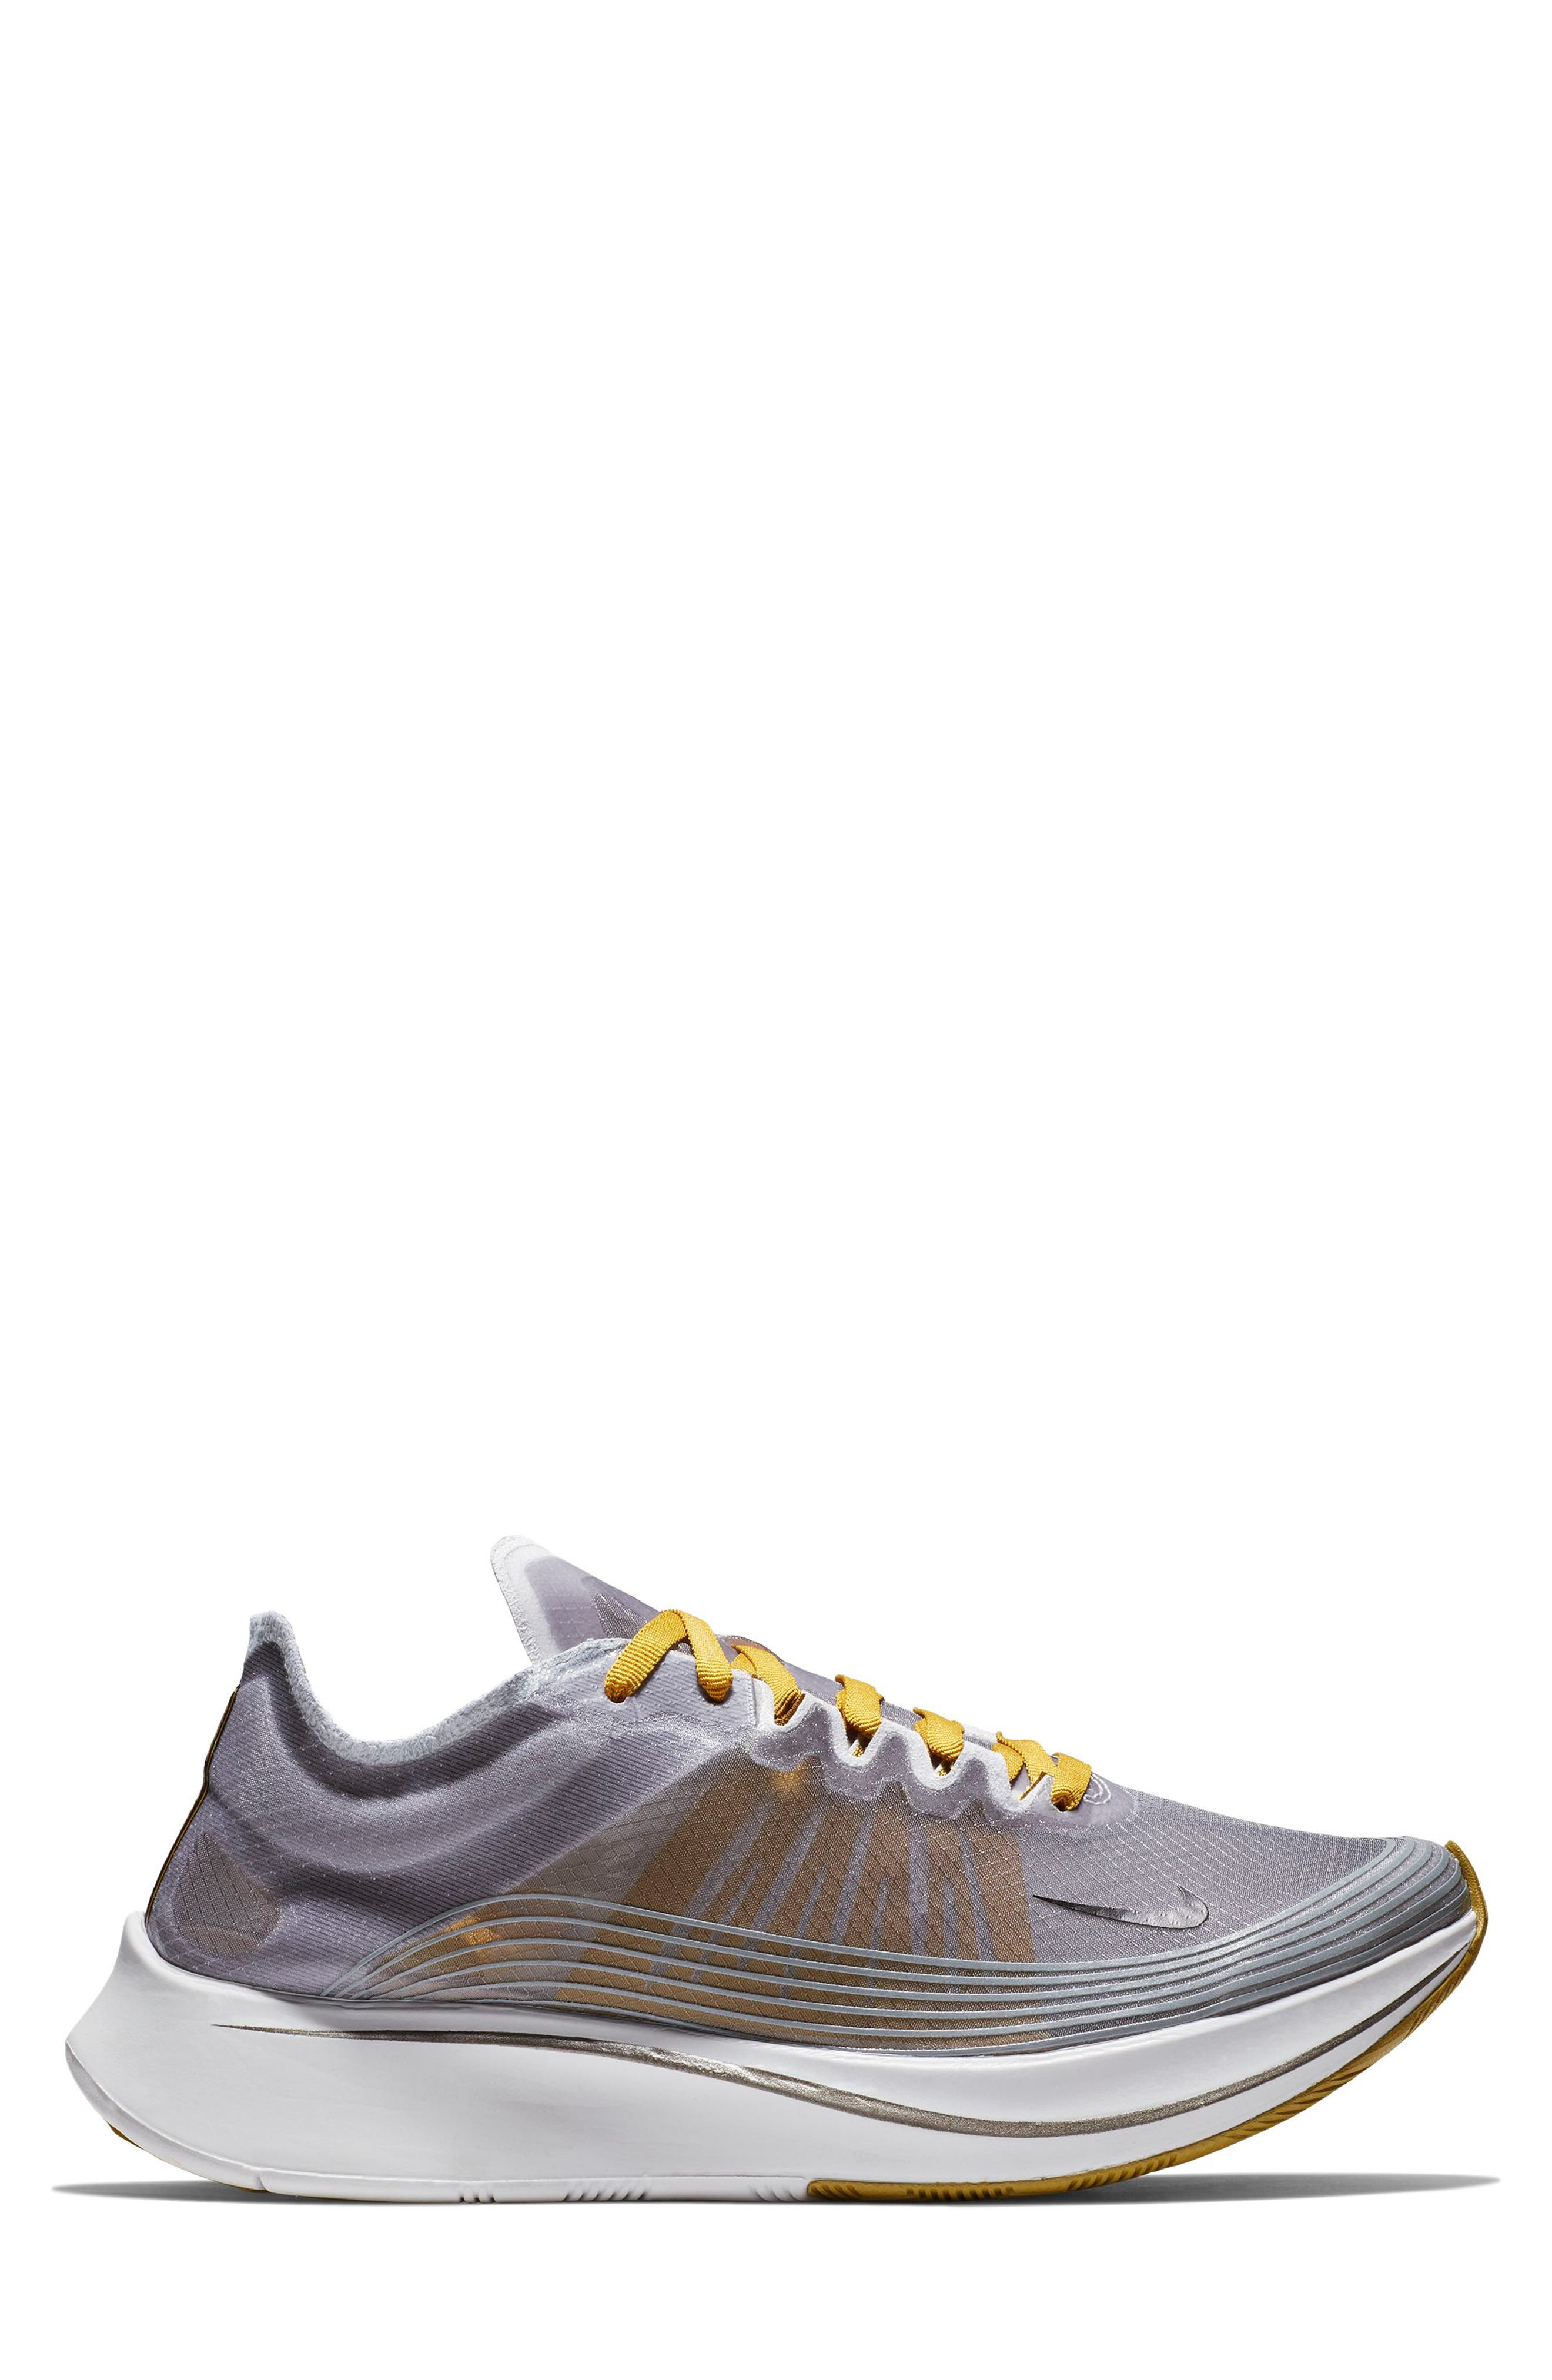 Zoom Fly SP Running Shoe,                             Alternate thumbnail 3, color,                             BLACK/ PEAT MOSS/ WHITE